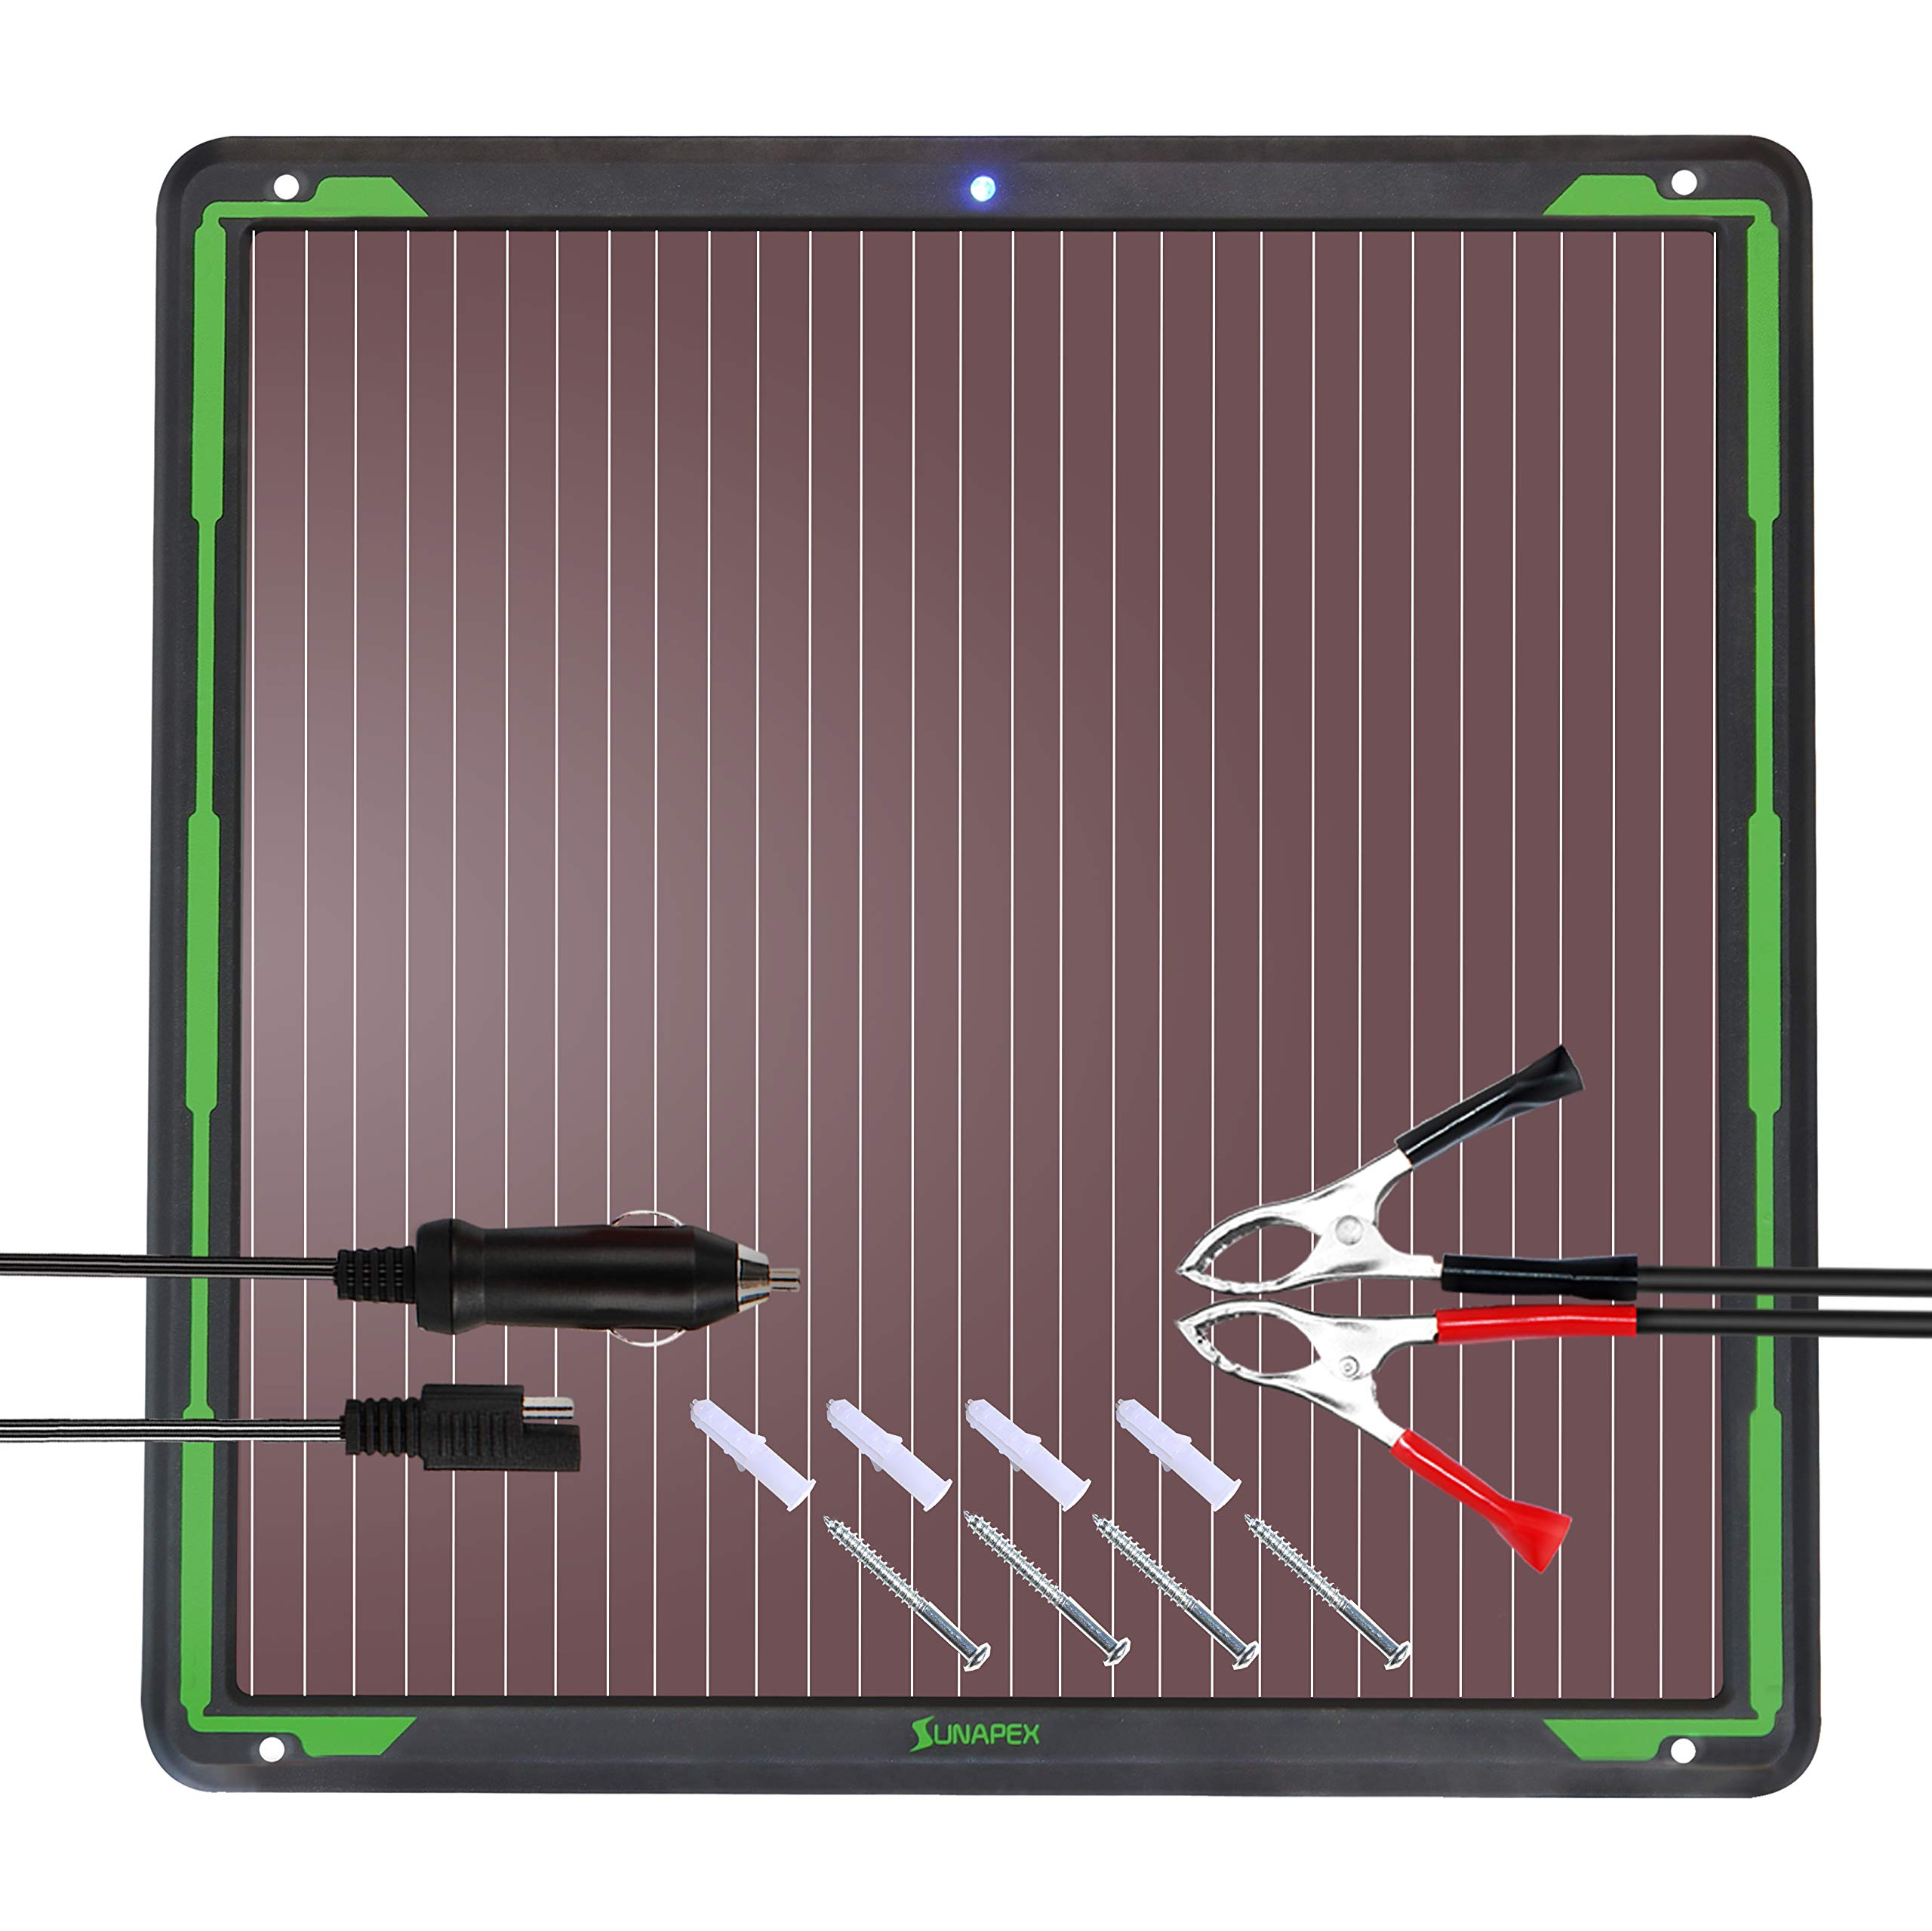 SUNAPEX 7.5W 12V Solar trickle Charger,Battery Charger,Battery Tender Portable Power Solar Panel Suitable for Automotive, Motorcycle, Boat, ATV,Marine, RV, Trailer, Snowmobile, etc.